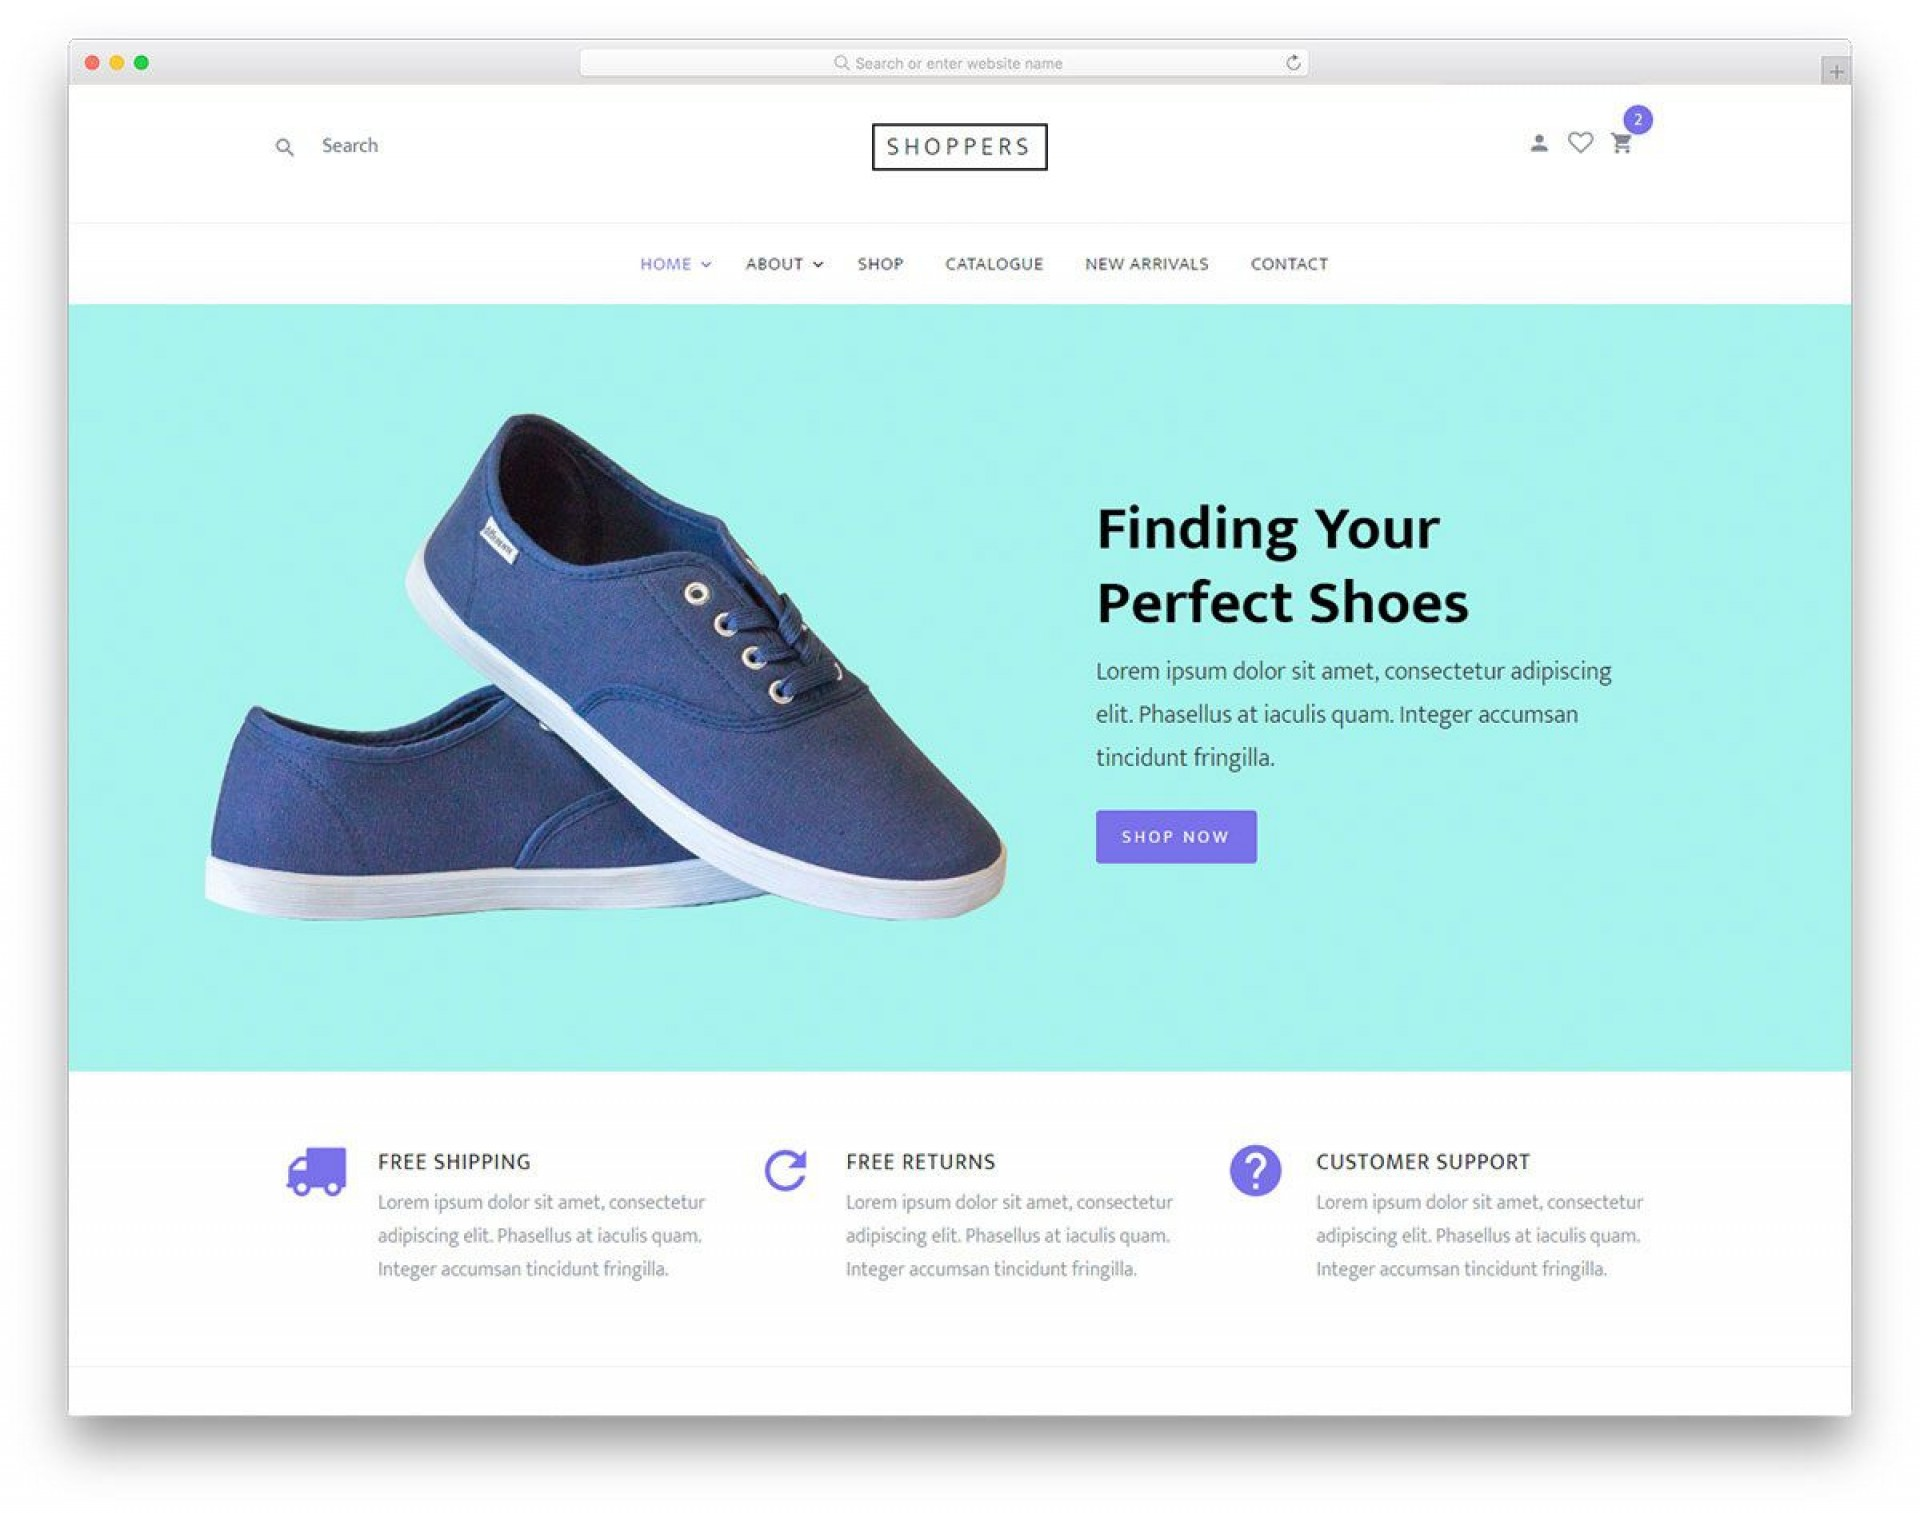 006 Surprising Free Ecommerce Website Template Highest Clarity  Templates Github For Blogger Shopping Cart Wordpres1920